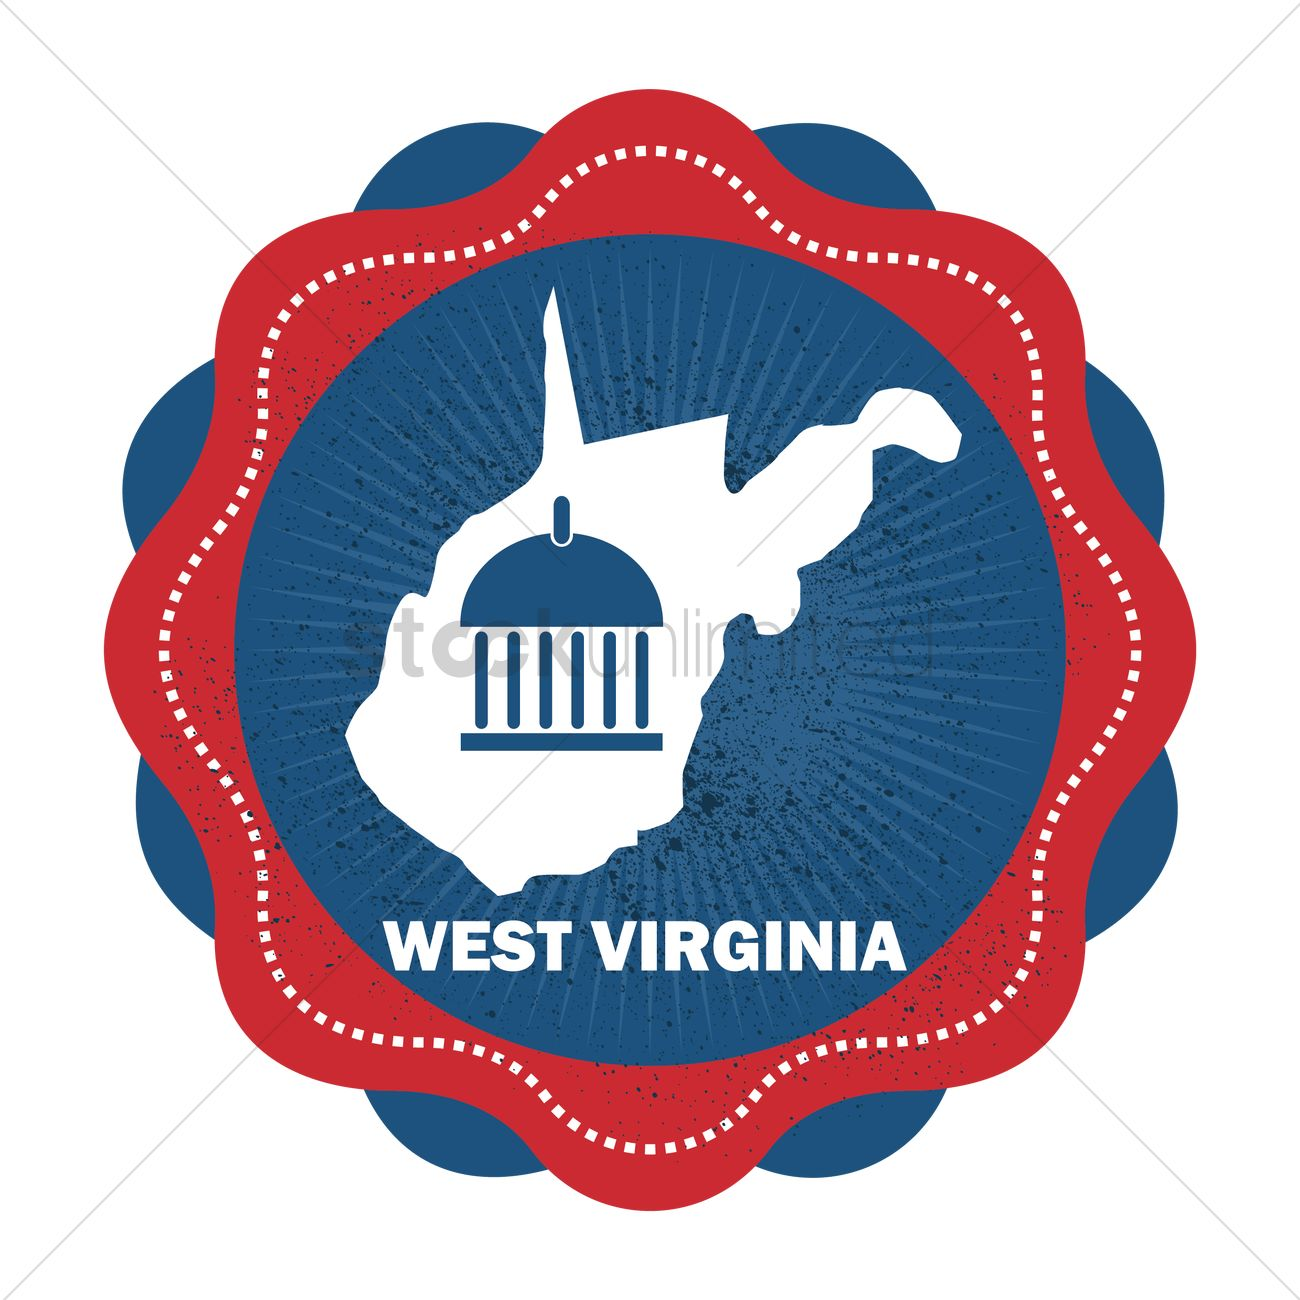 West Virginia State Map Vector Image 1564367 Stockunlimited